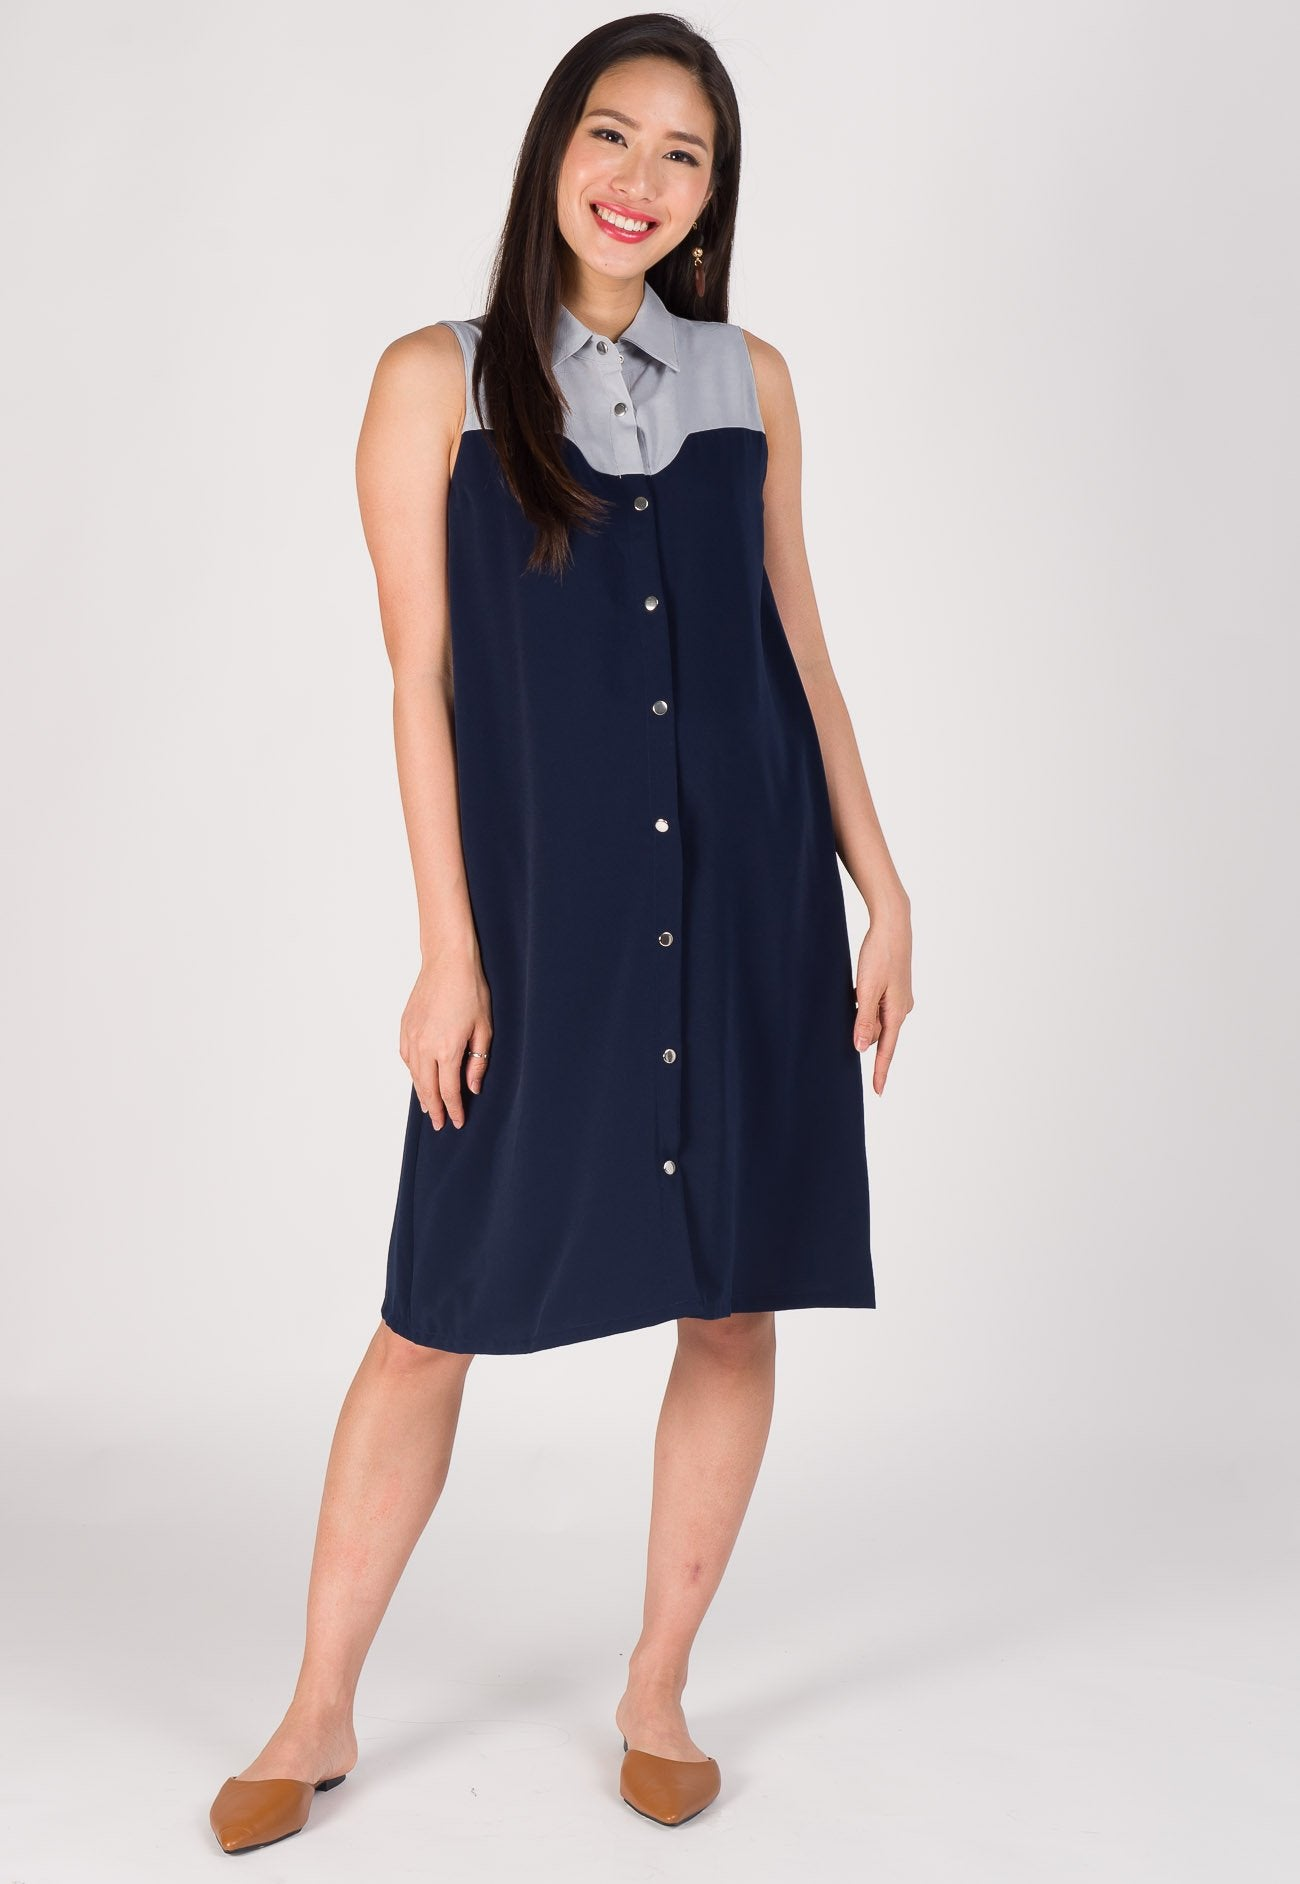 Curve Detailed Nursing Shirt Dress in Navy  by Jump Eat Cry - Maternity and nursing wear